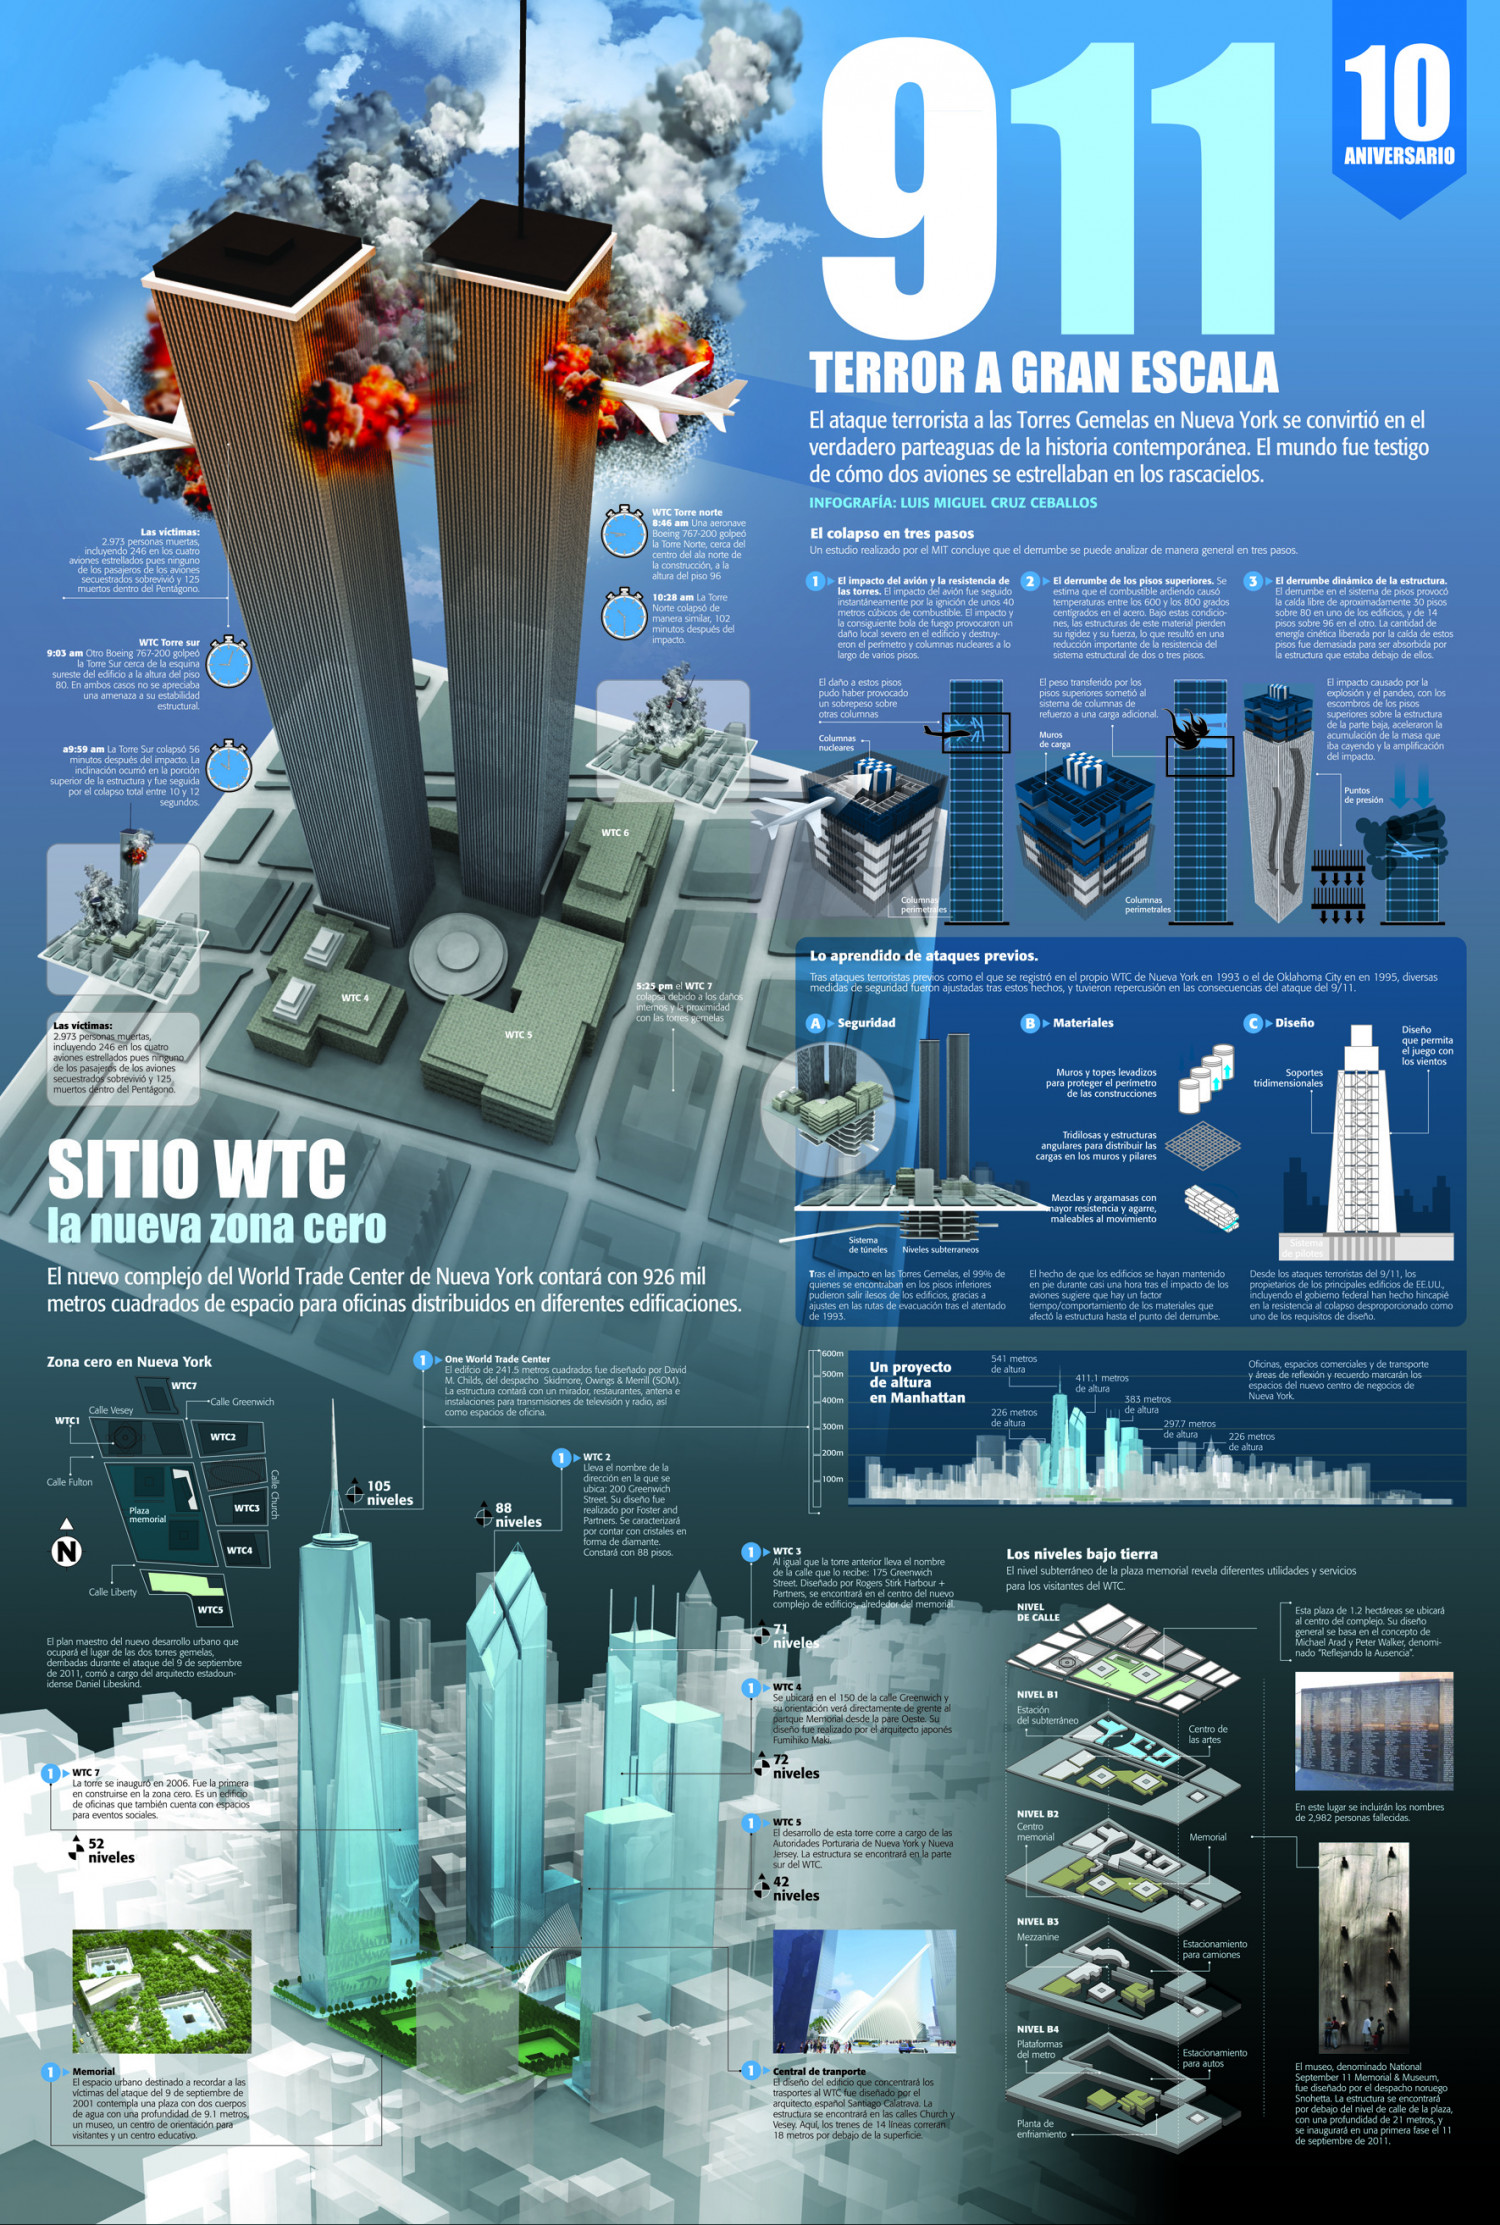 911 10th aniversary Infographic